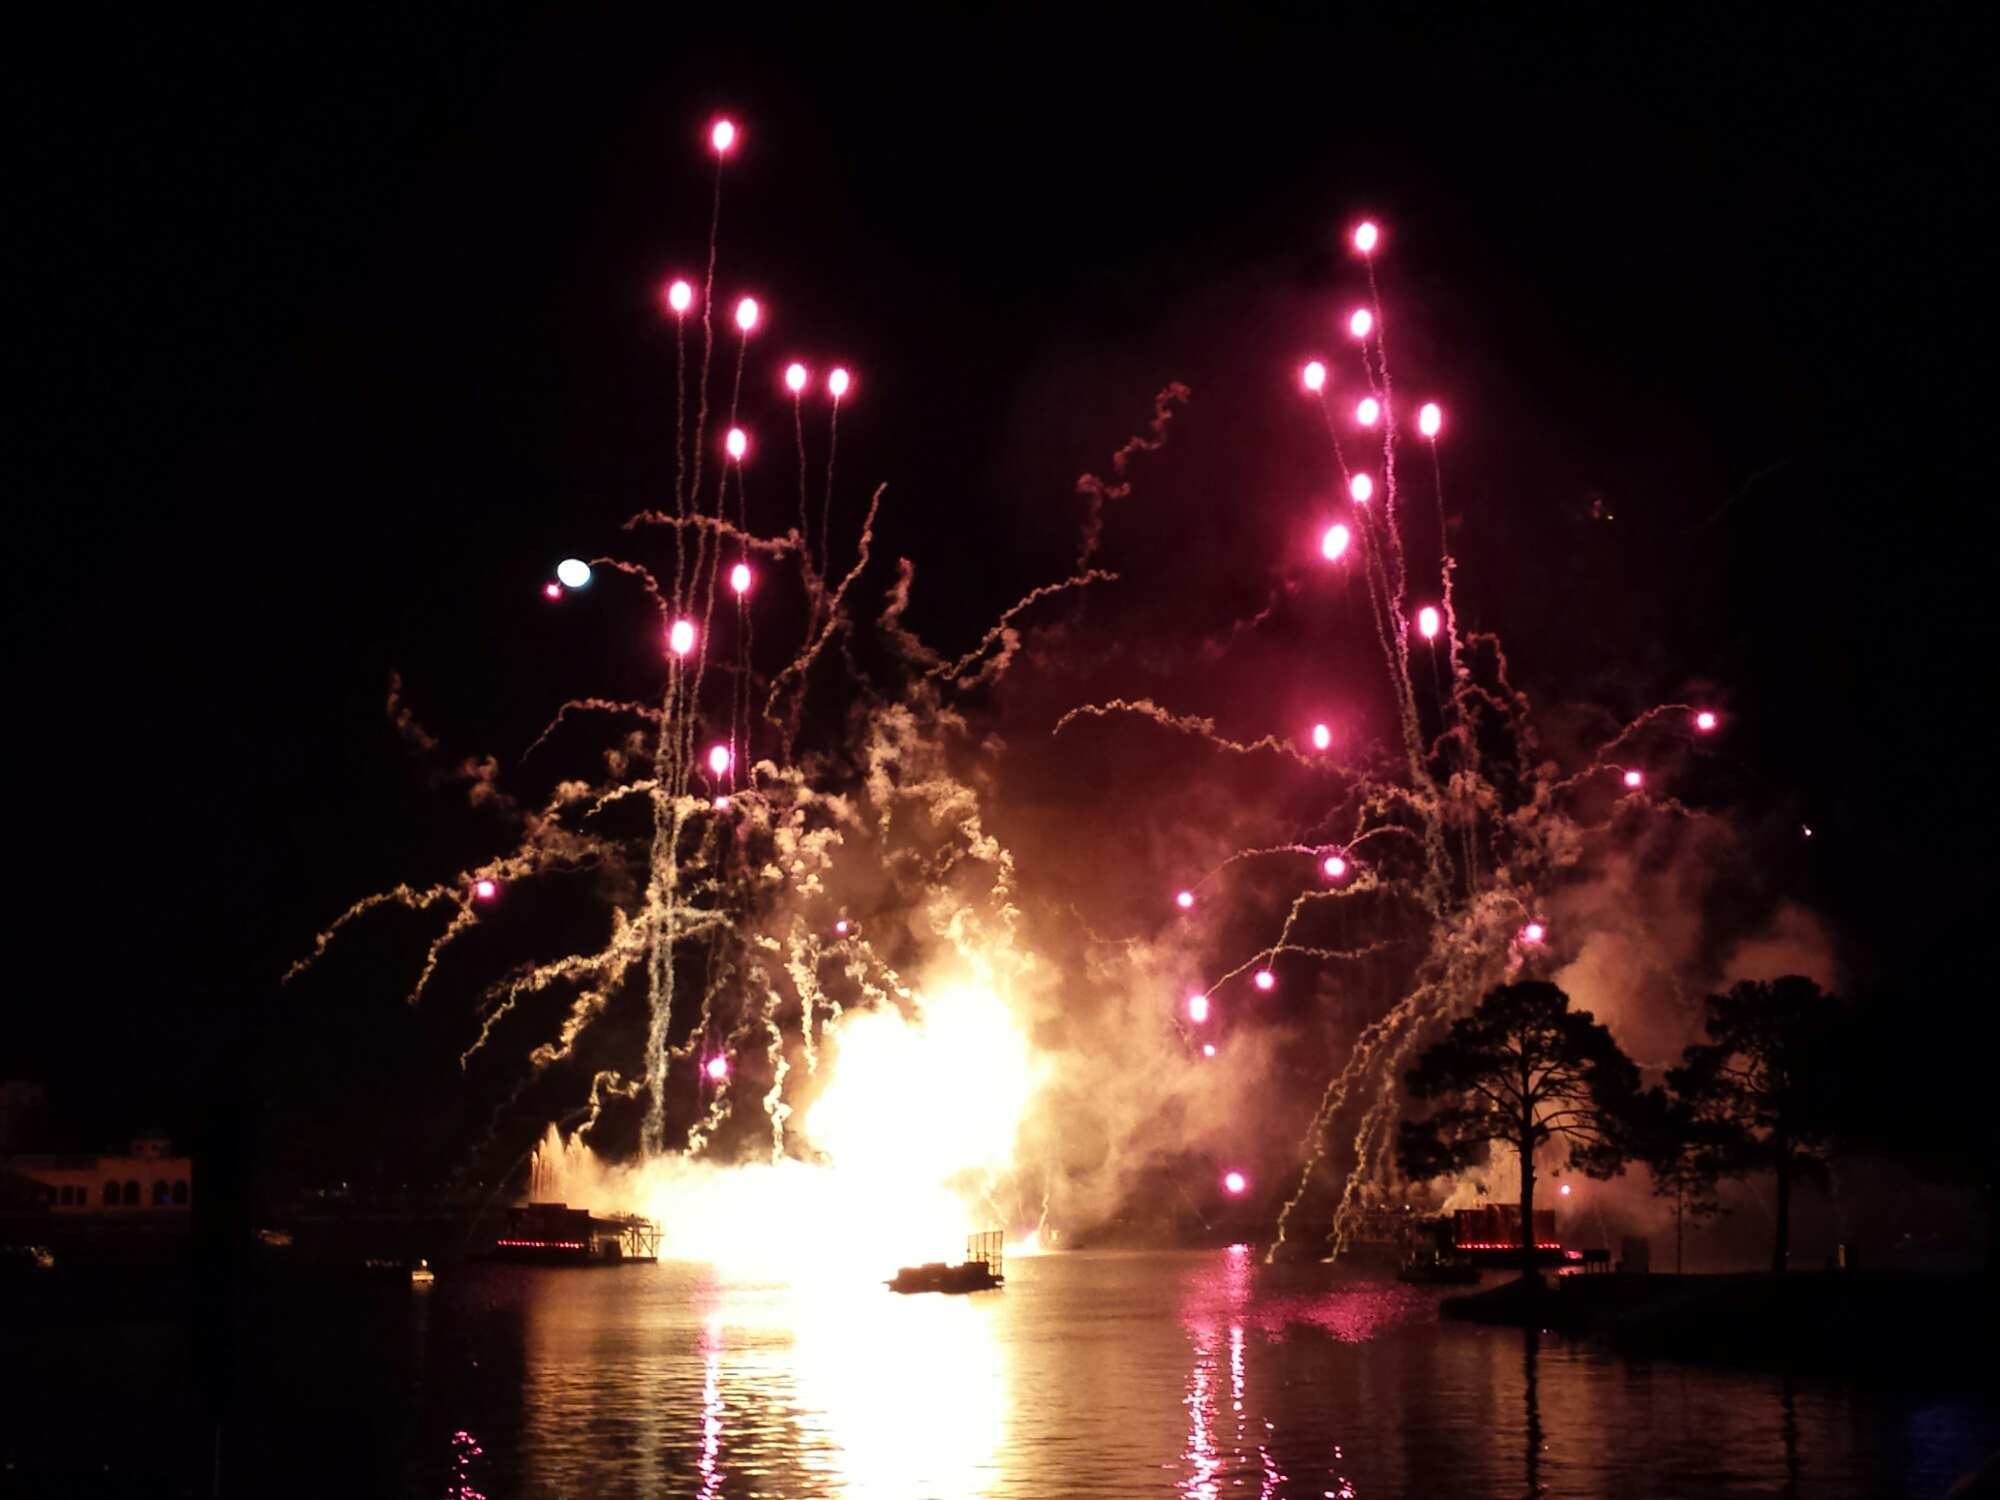 Time for Illuminations Reflections of Earth #Epcot